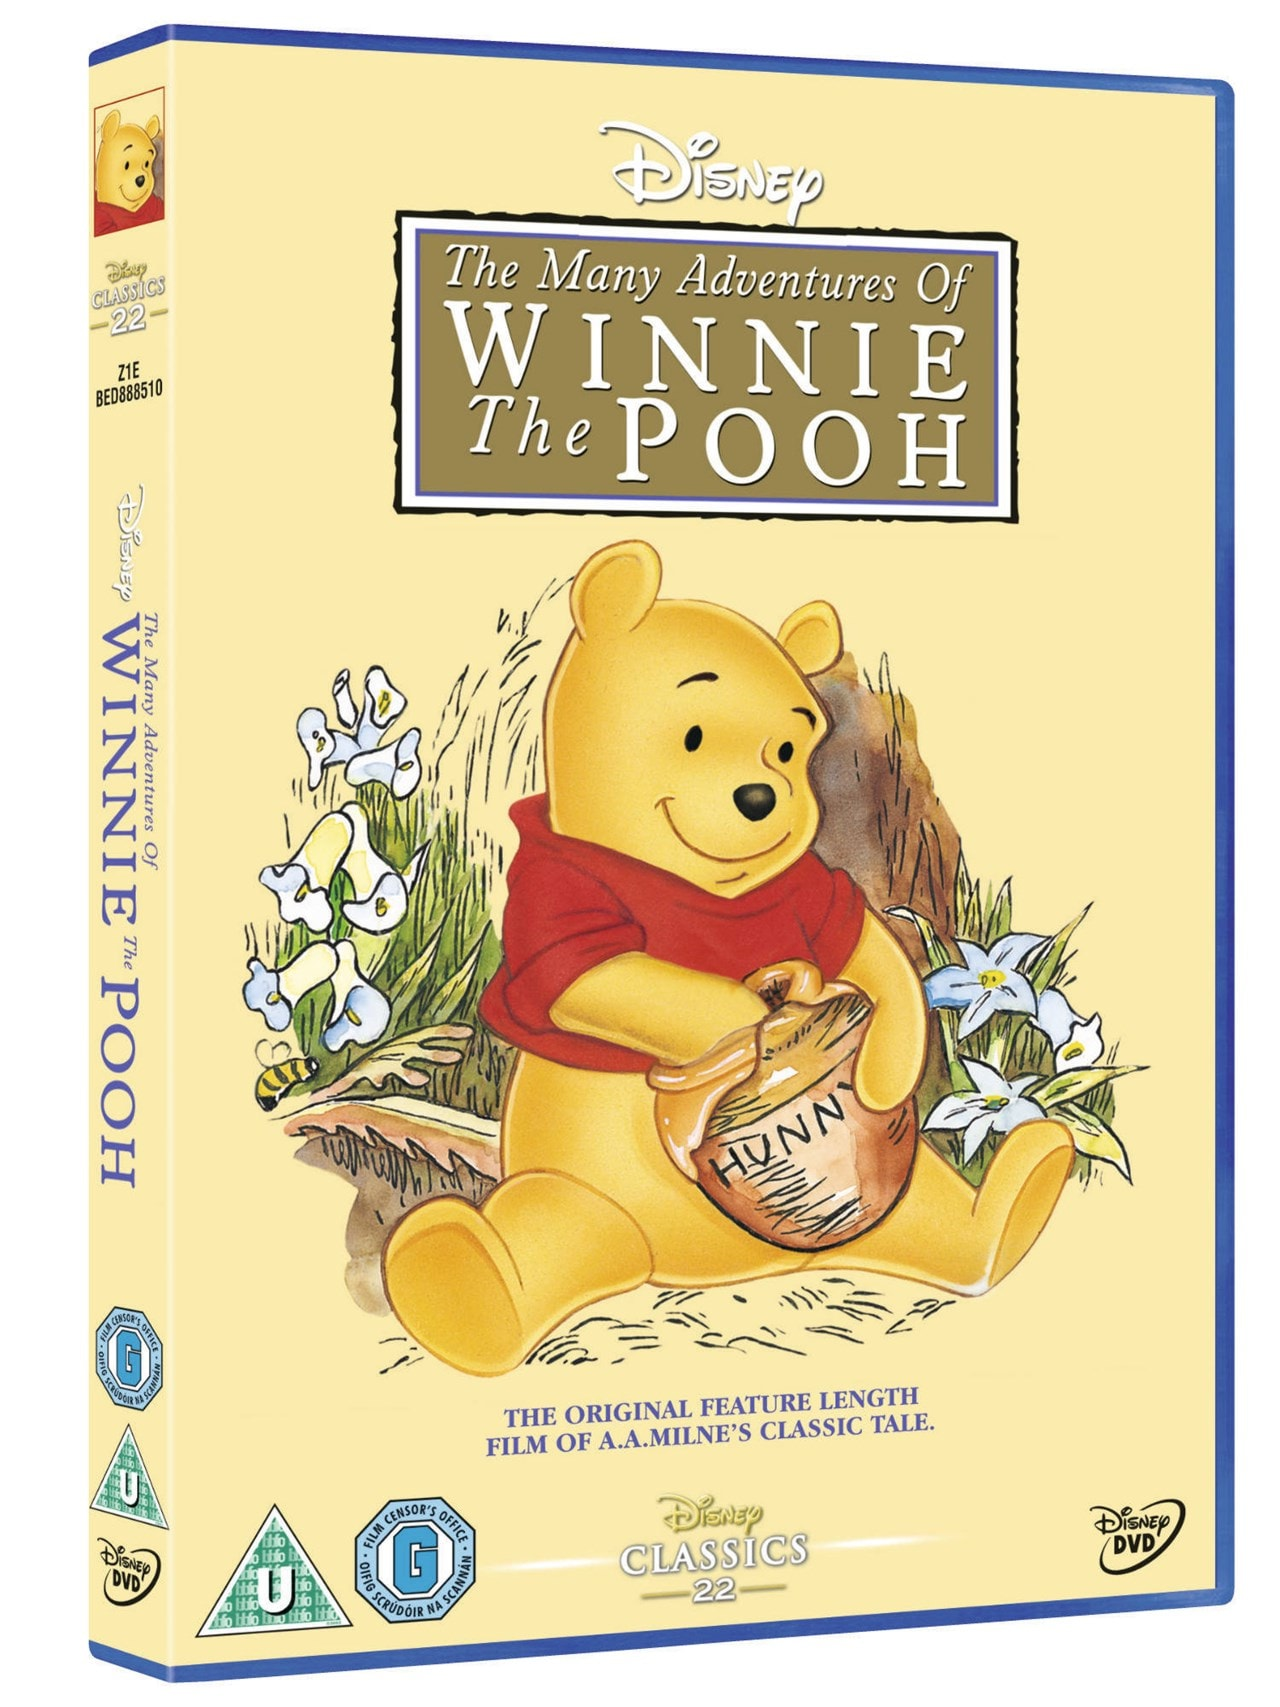 Winnie the Pooh: The Many Adventures of Winnie the Pooh - 4